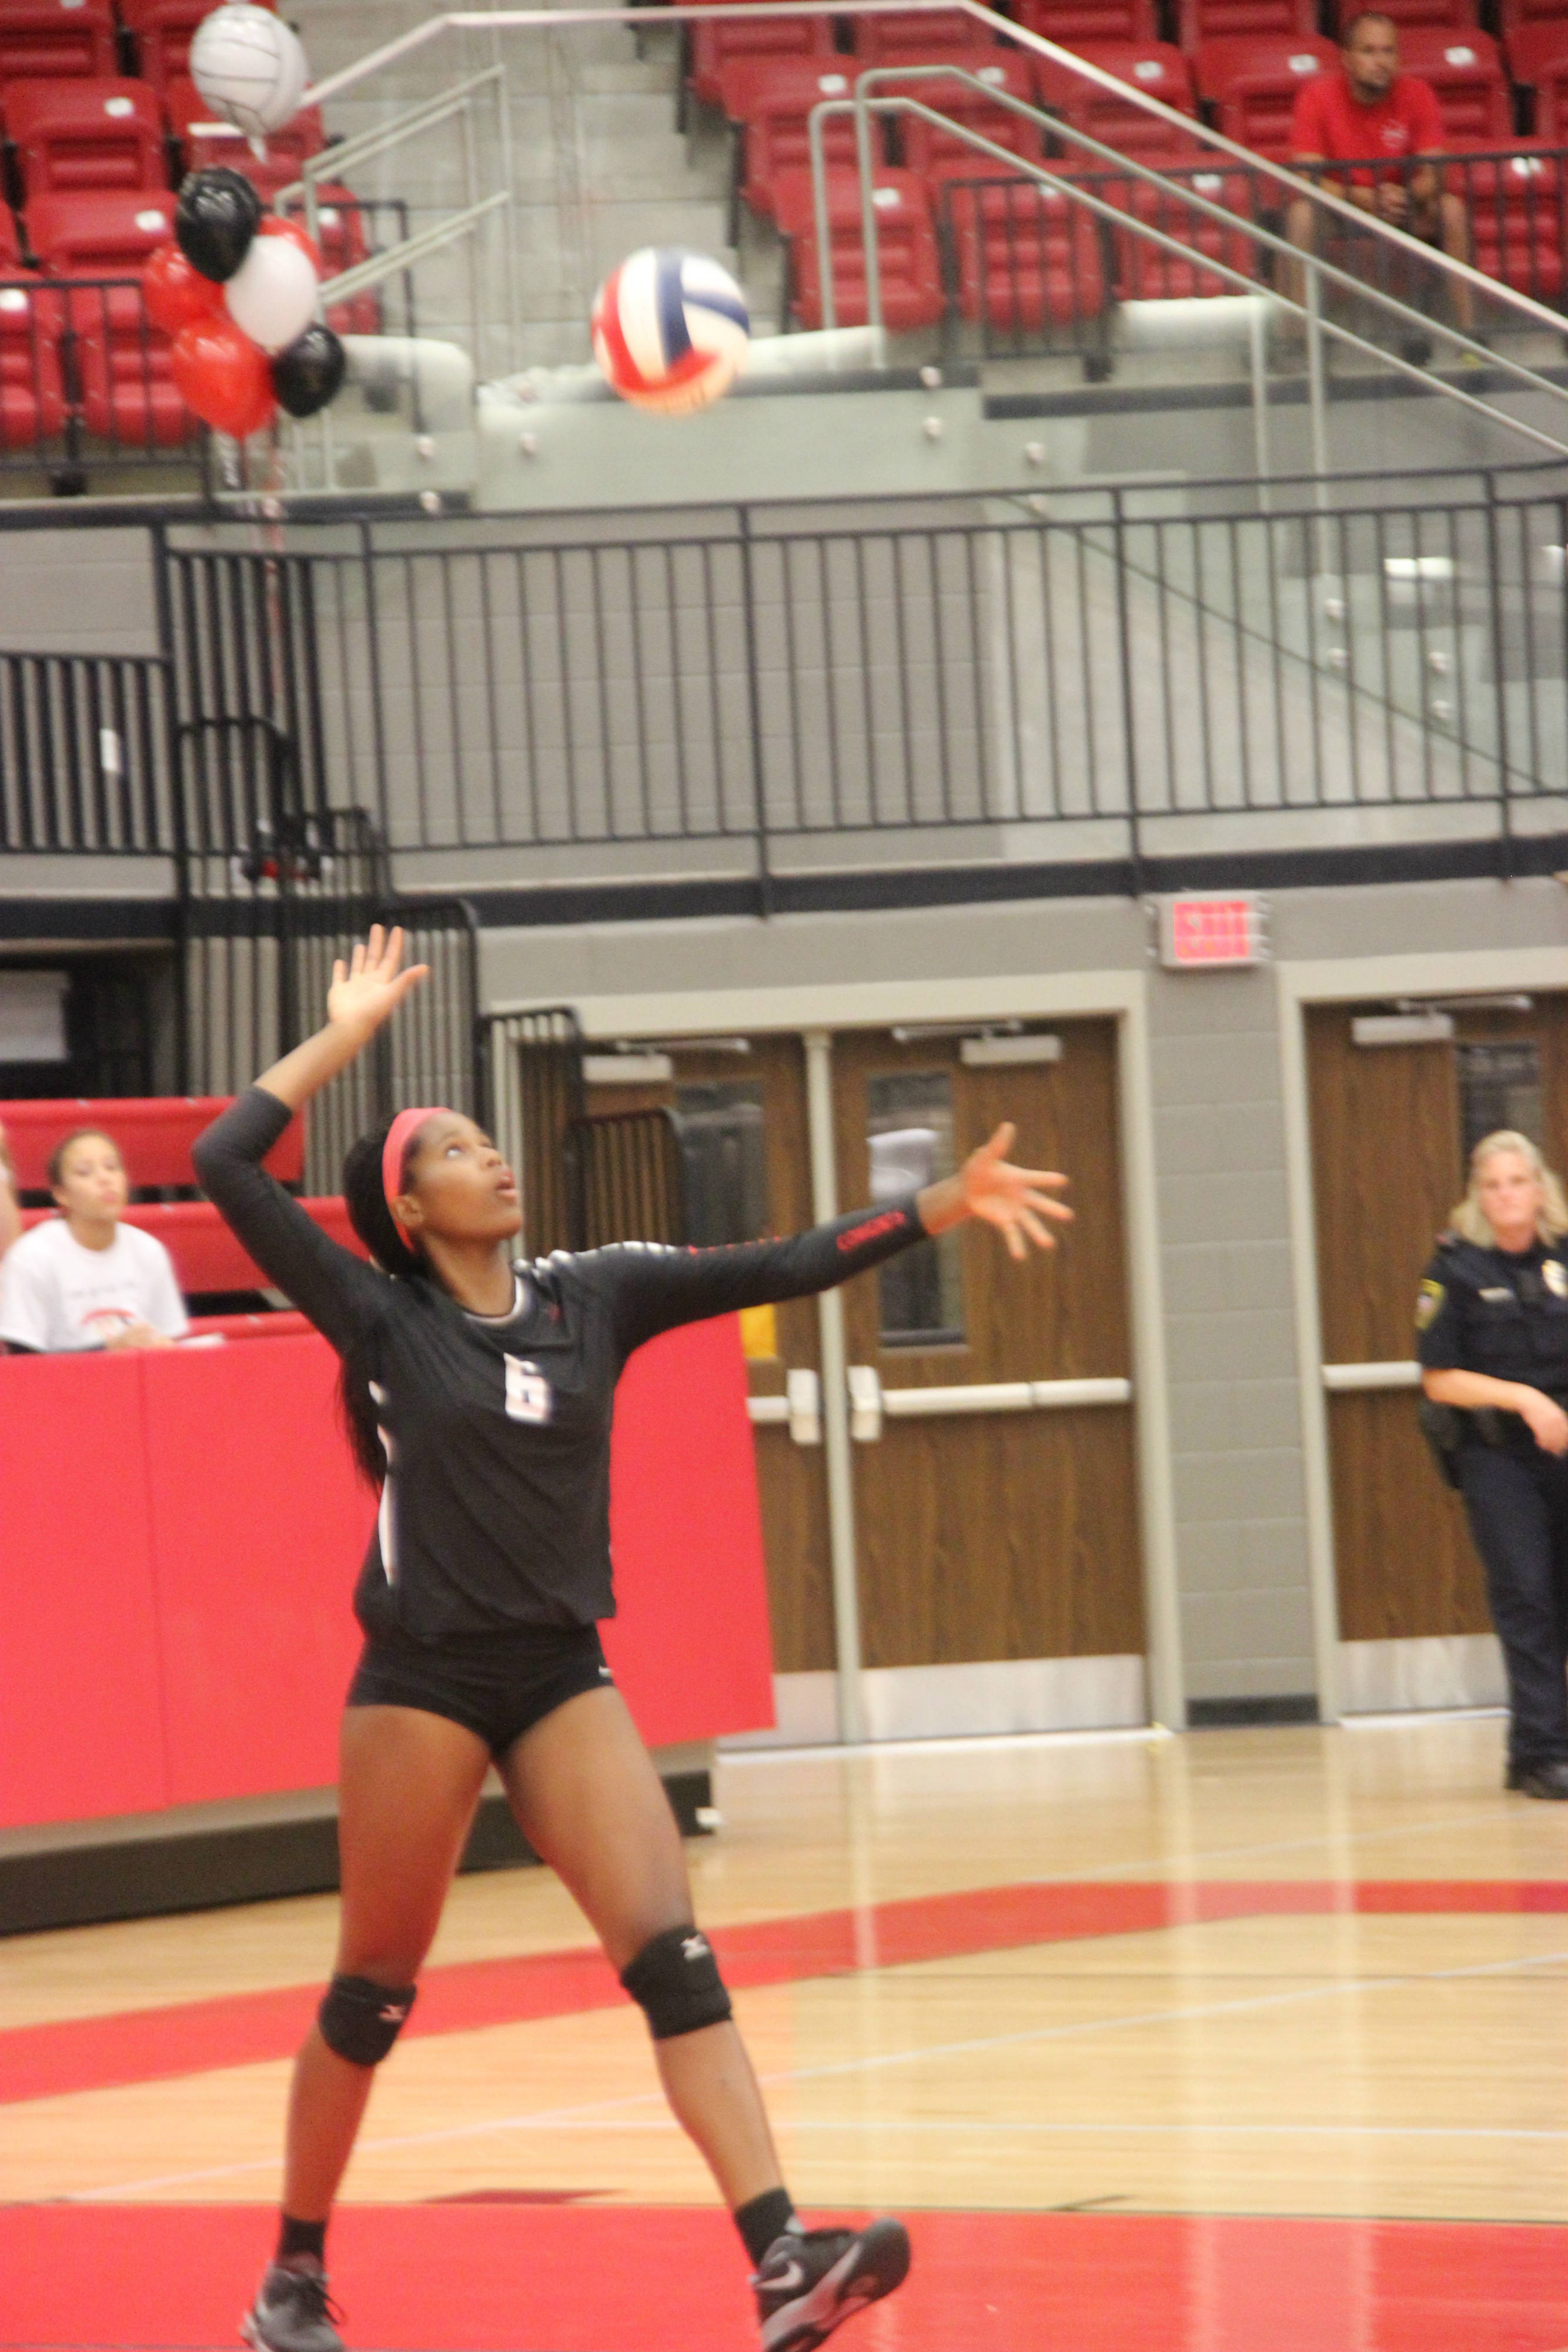 Coppell High School sophomore Amanda Osuji serves the ball during the third set on Tuesday night against Lake Highland. The Coppell Cowgirls defeated Lake Highland, winning three out of the five sets played in the Coppell High School arena. Photo by Katie Wiener.